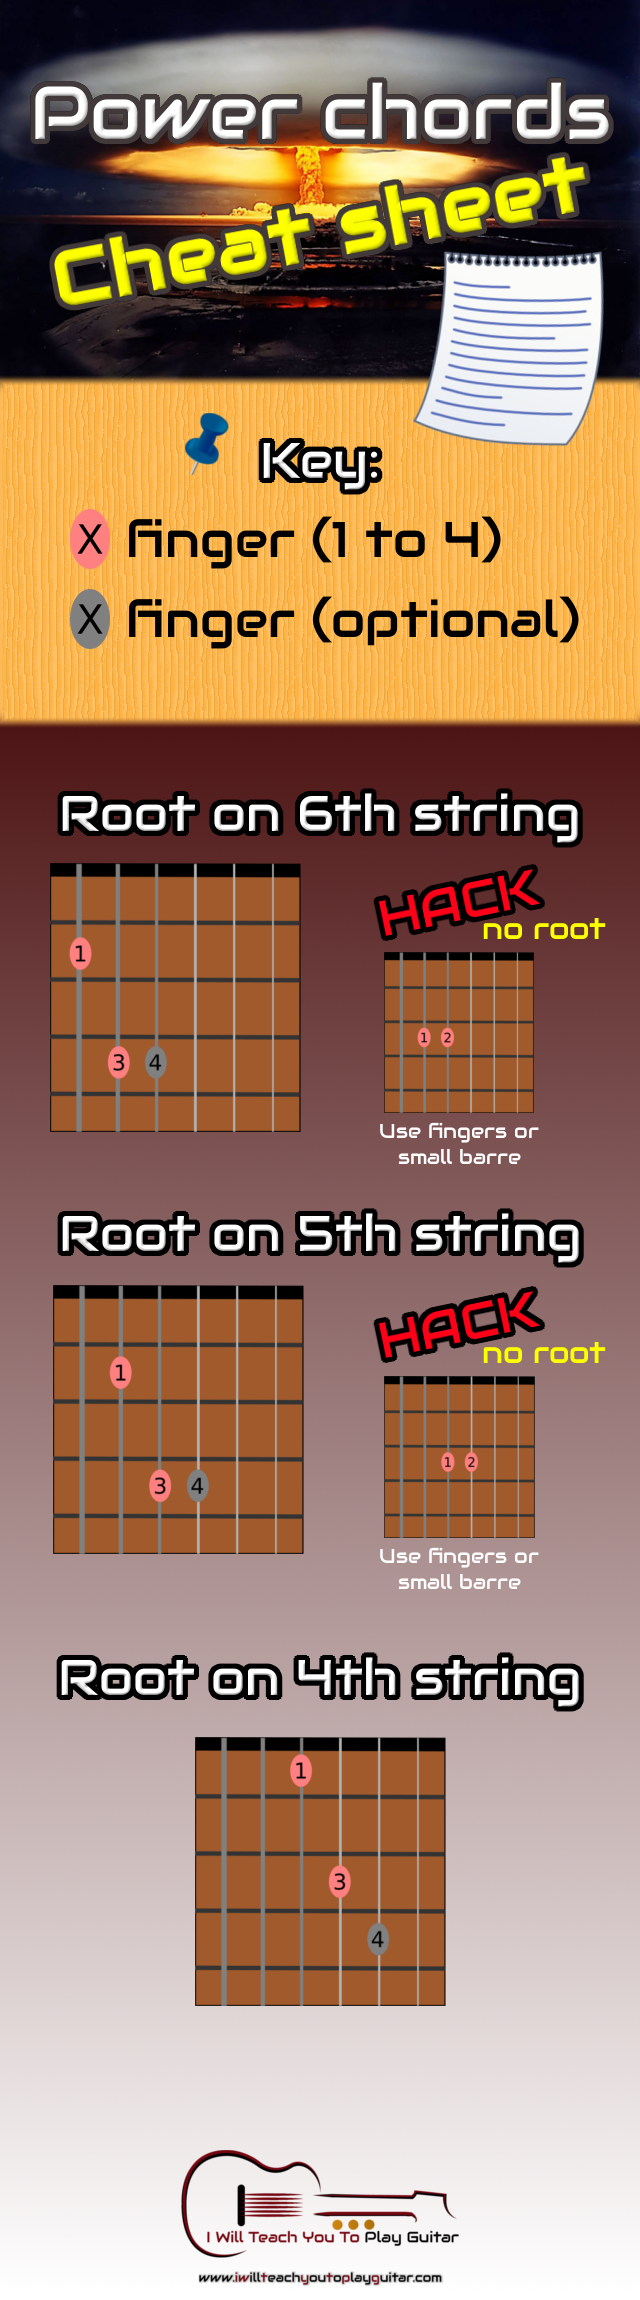 The power of Power Chords   I Will Teach You To Play Guitar - Learn guitar!